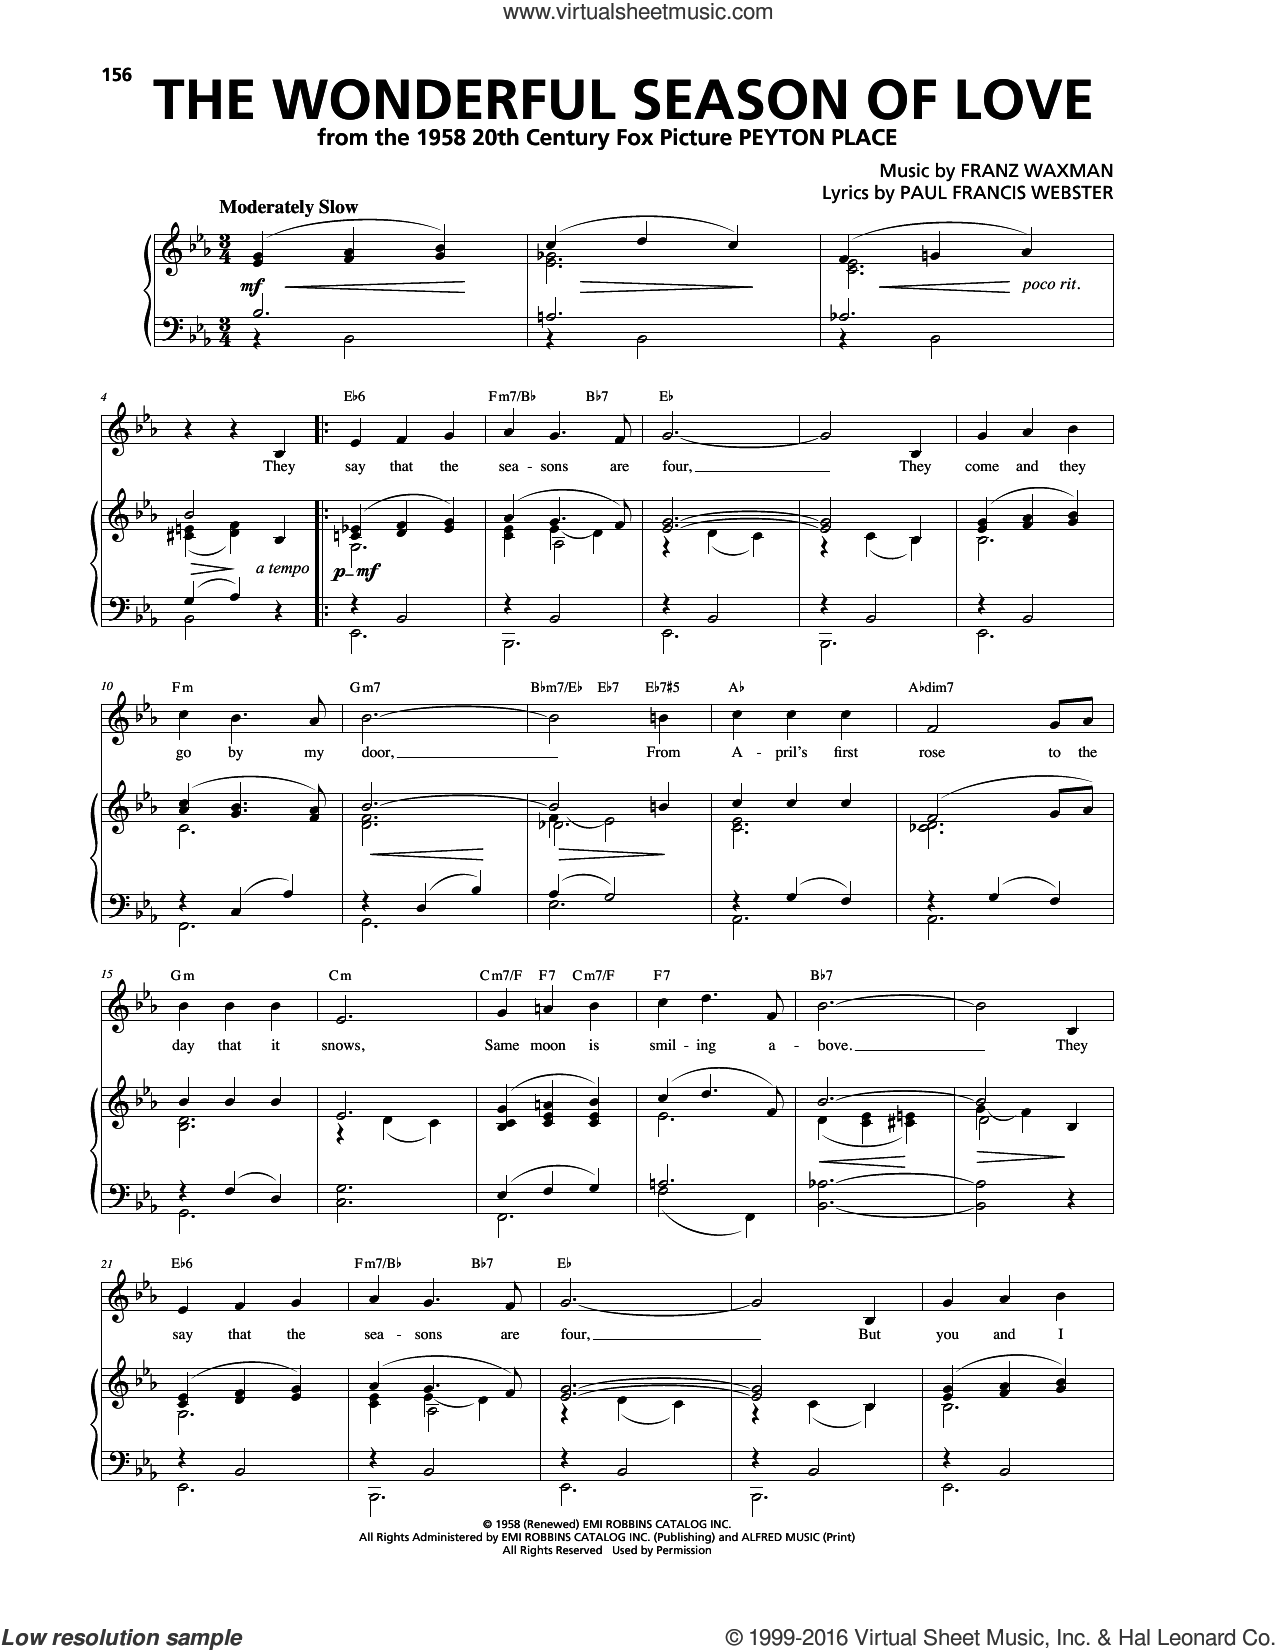 The Wonderful Season Of Love sheet music for voice, piano or guitar by Franz Waxman and Paul Francis Webster, intermediate